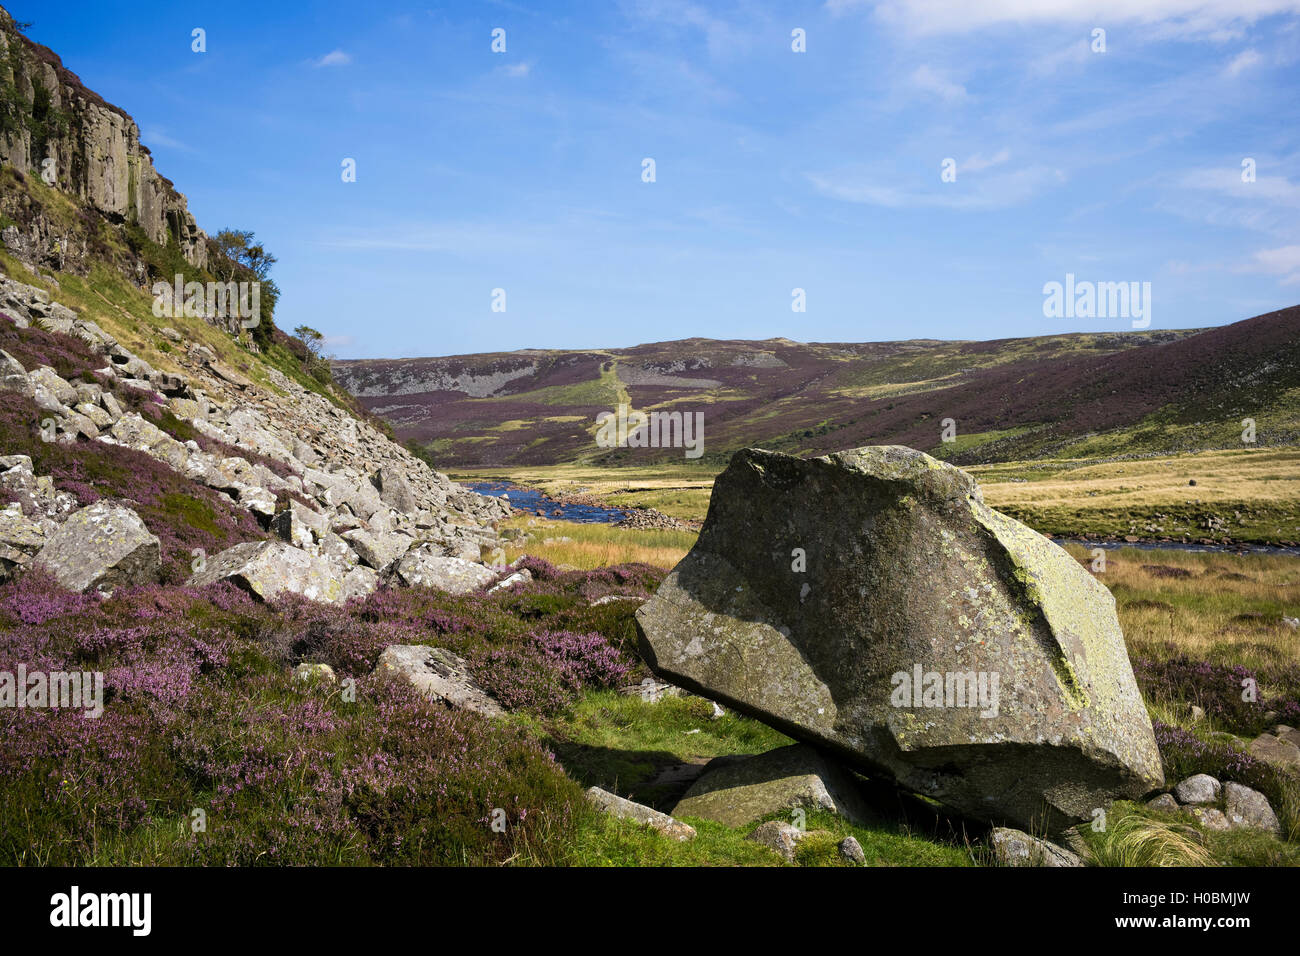 An artistically fractured rock below Falcon Clints, Upper Teesdale National Nature Reserve, Durham, England, UK - Stock Image